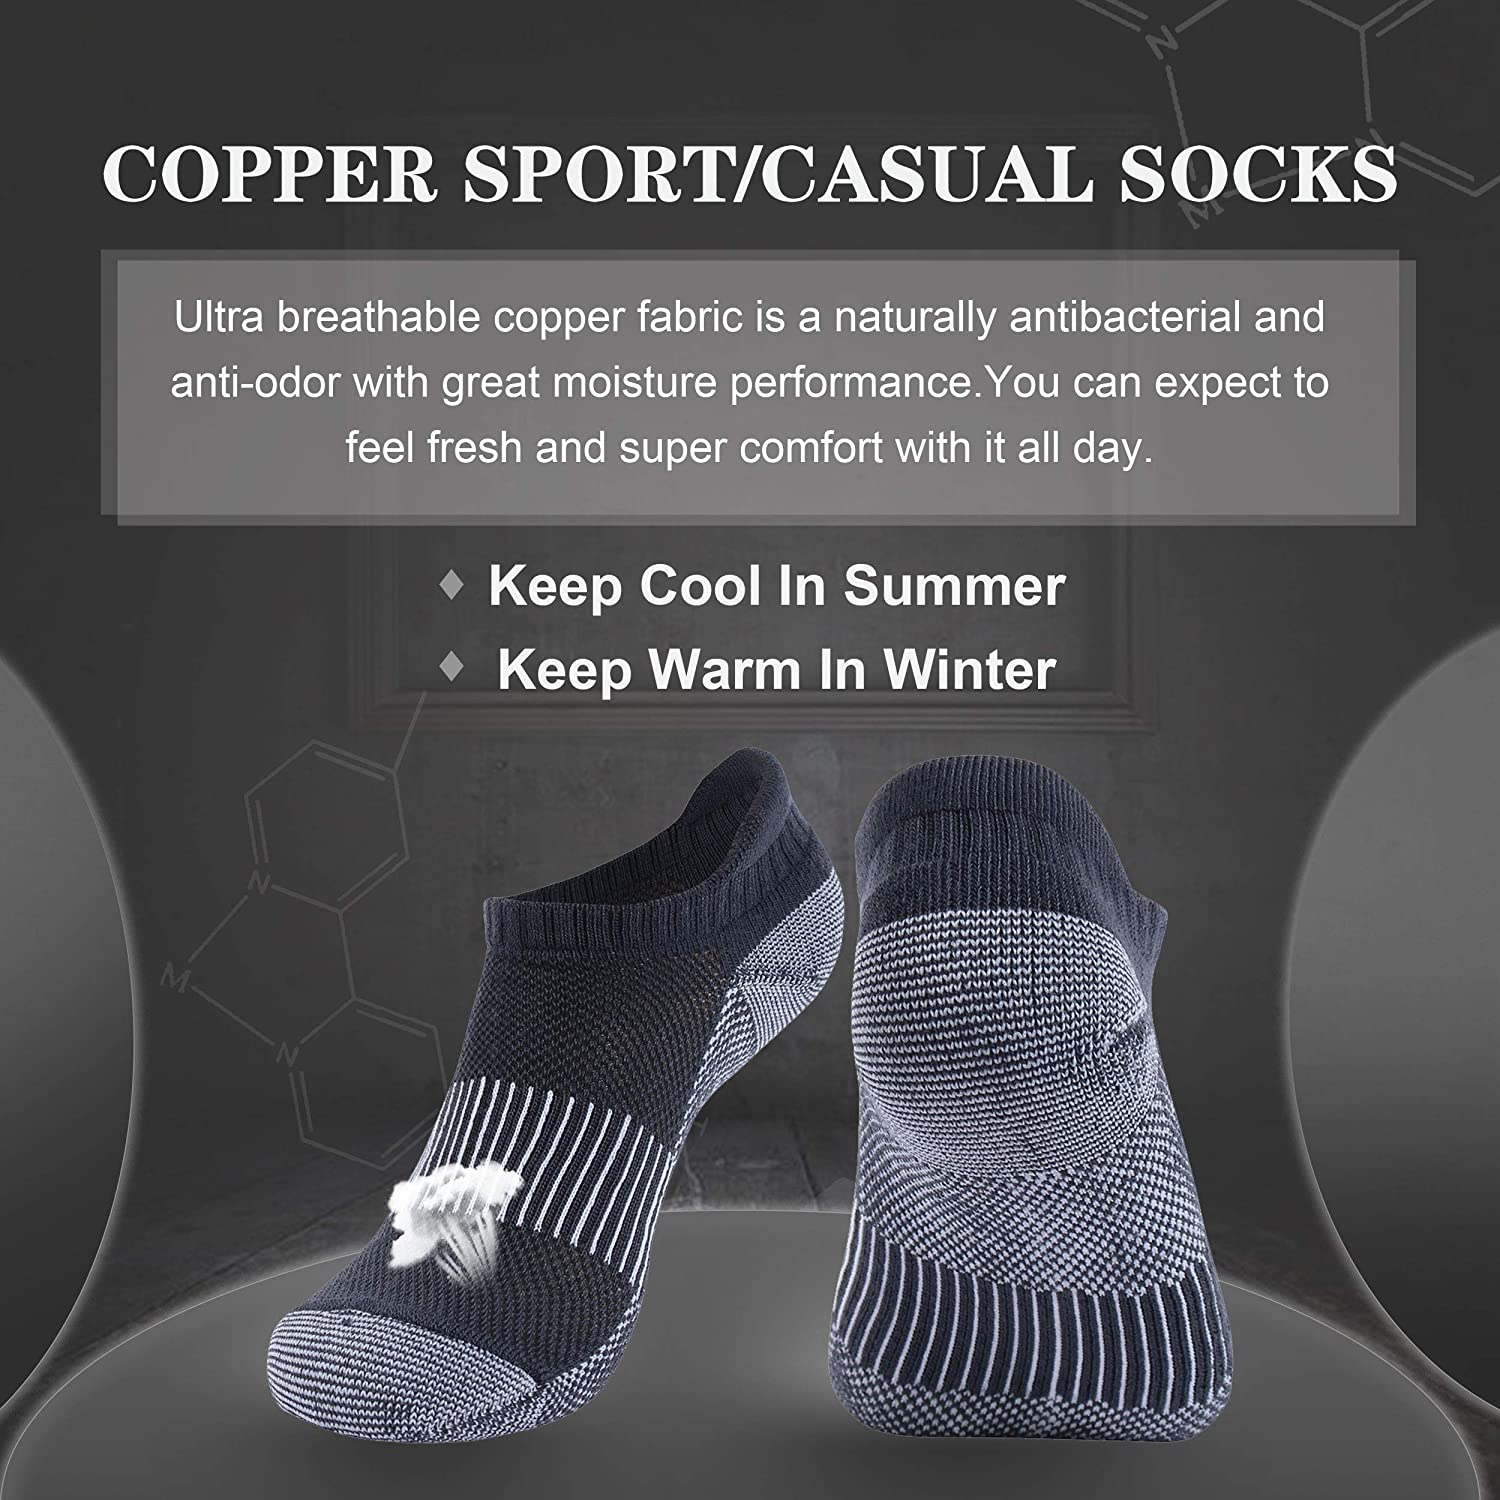 Three street Unisex Cushioned Sole Arch Support Athletic Ankle Performance Home Training Socks 3 Pairs Copper Socks